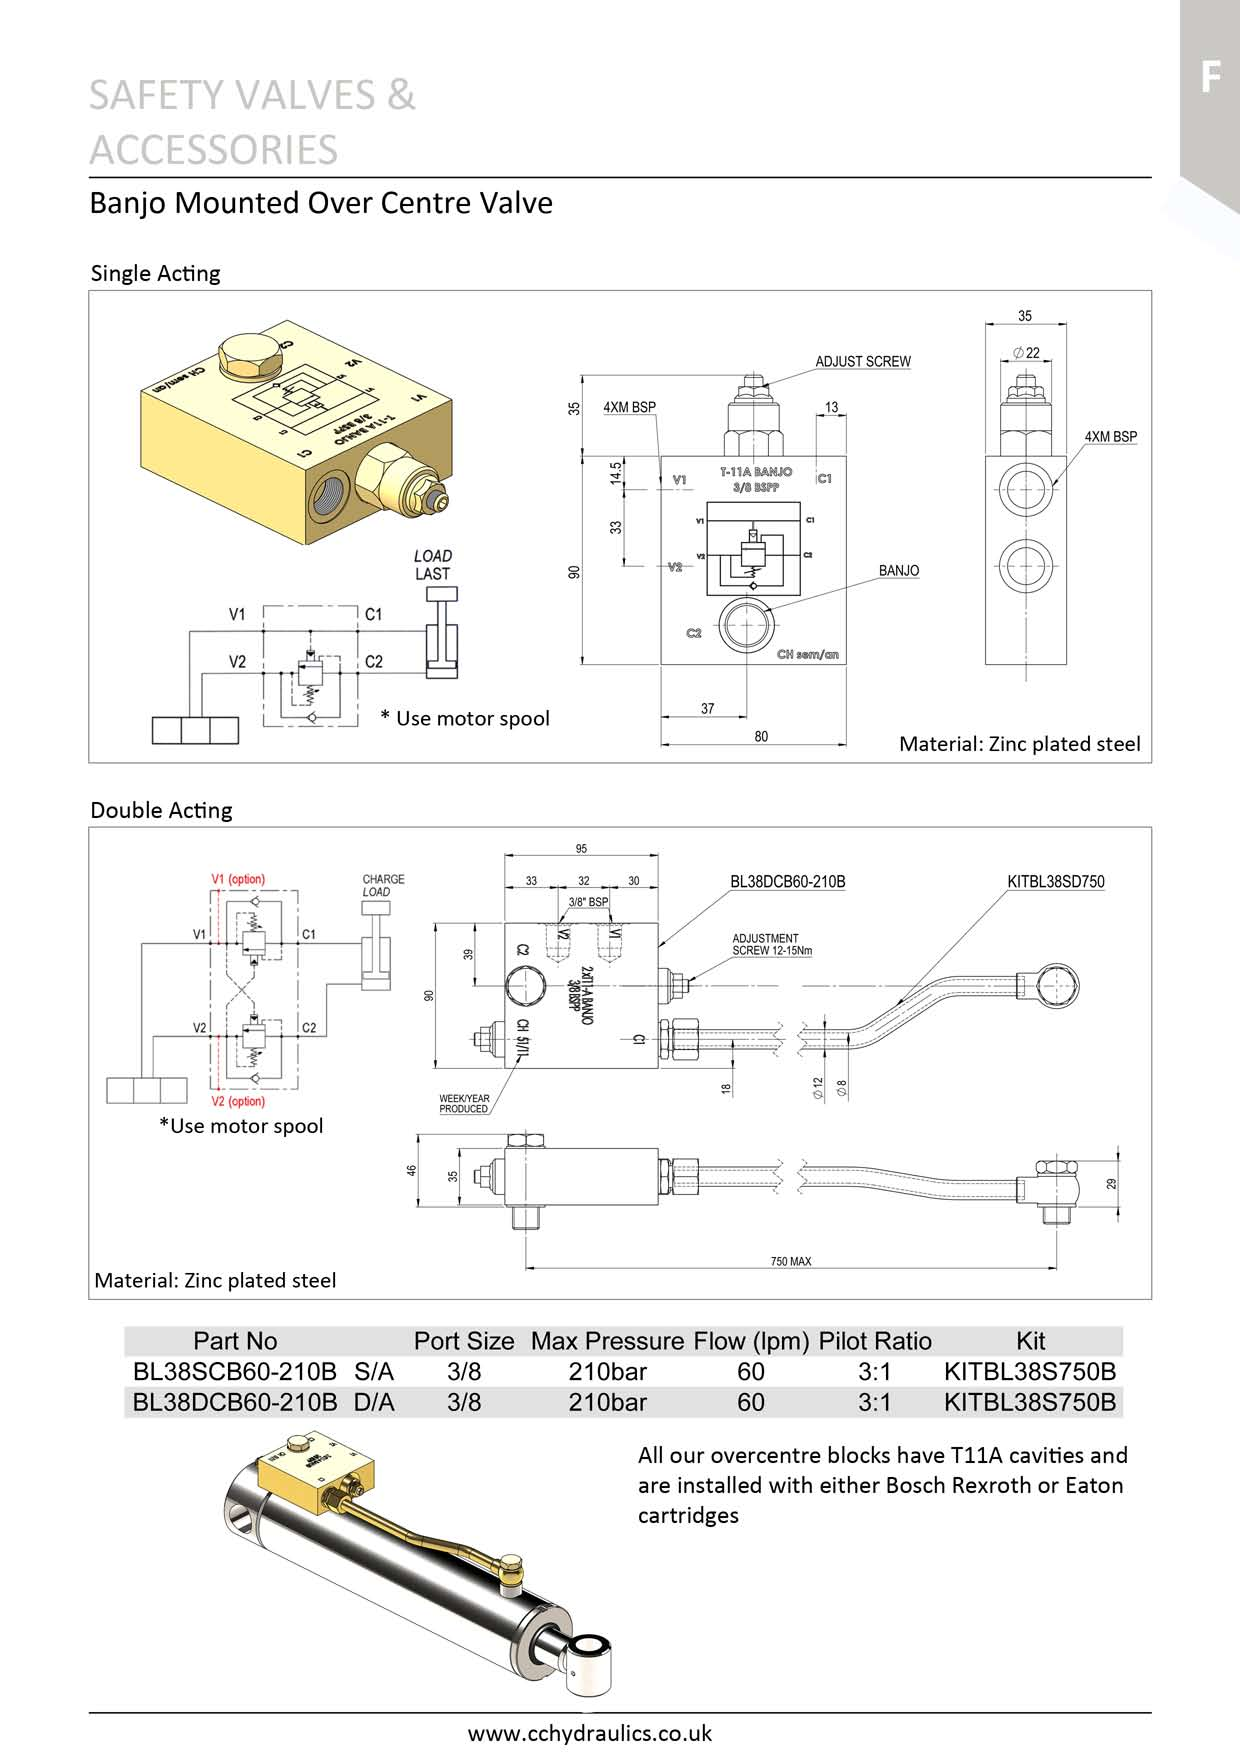 Banjo Mounted Over Centre Valves - C&C Hydraulics Ltd on valve flow diagram, valve solenoid, valve timing, valve guide, valve components diagram, valve adjustment, valve piston, valve actuator diagram, valve operation diagram, valve plug, valve cut sheet, valve packing diagram, valve assembly, valve compressor, valve radio, valve valve, valve schematic, valve regulator, valve system,